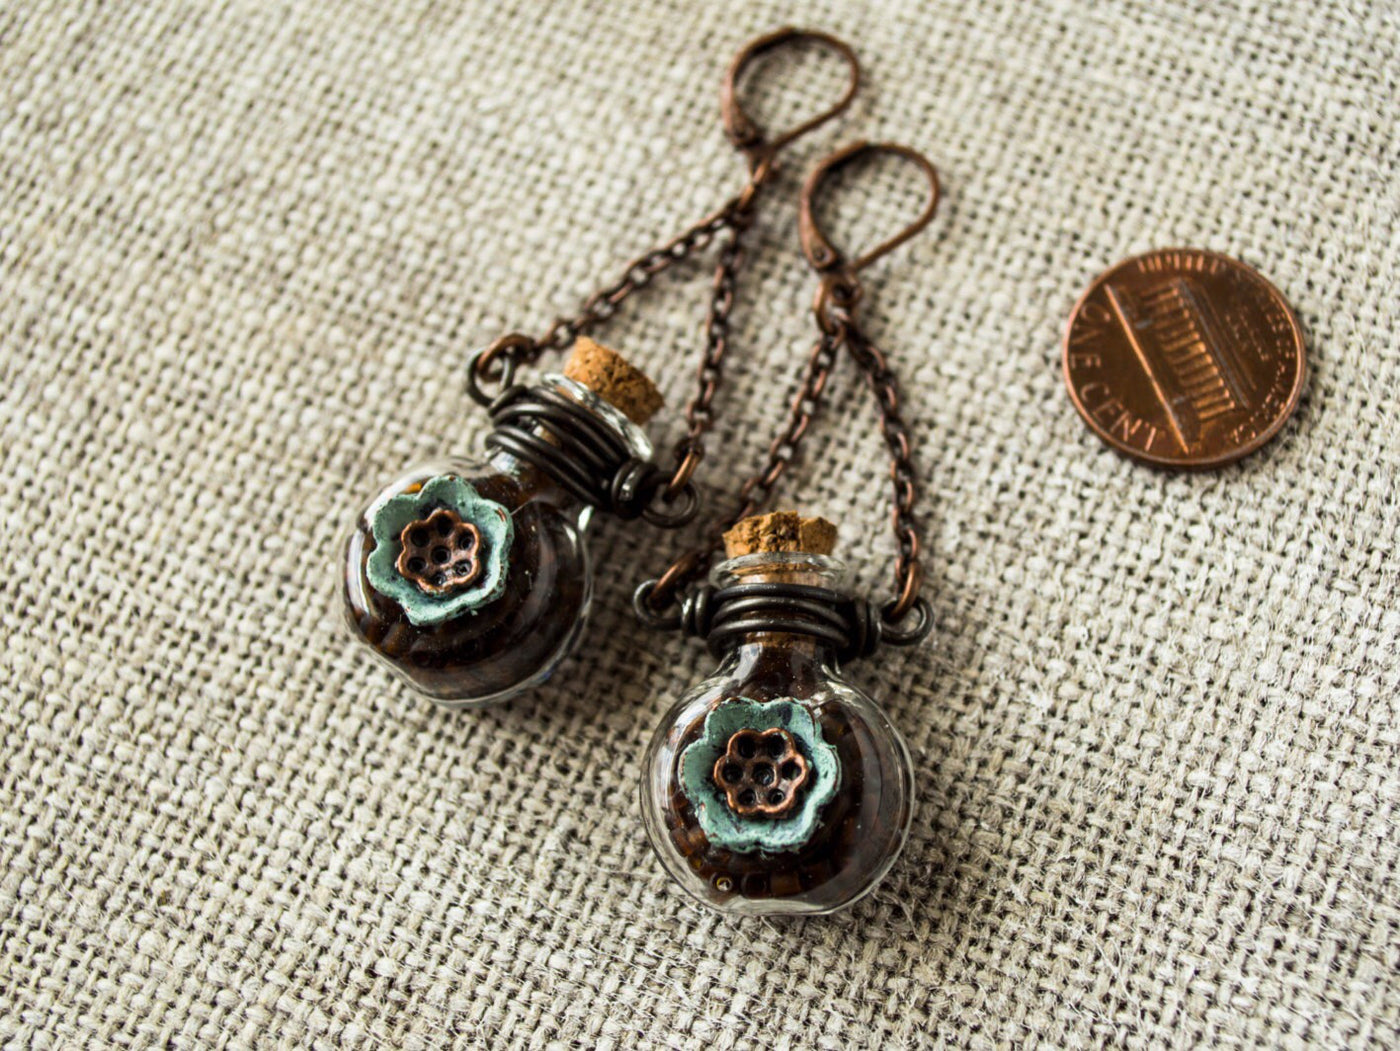 Bottle Earrings, Flask Earrings, Gypsy Earrings, Flower Earrings, Bohemian Earrings, Glass Earrings, Boho Earrings, E035